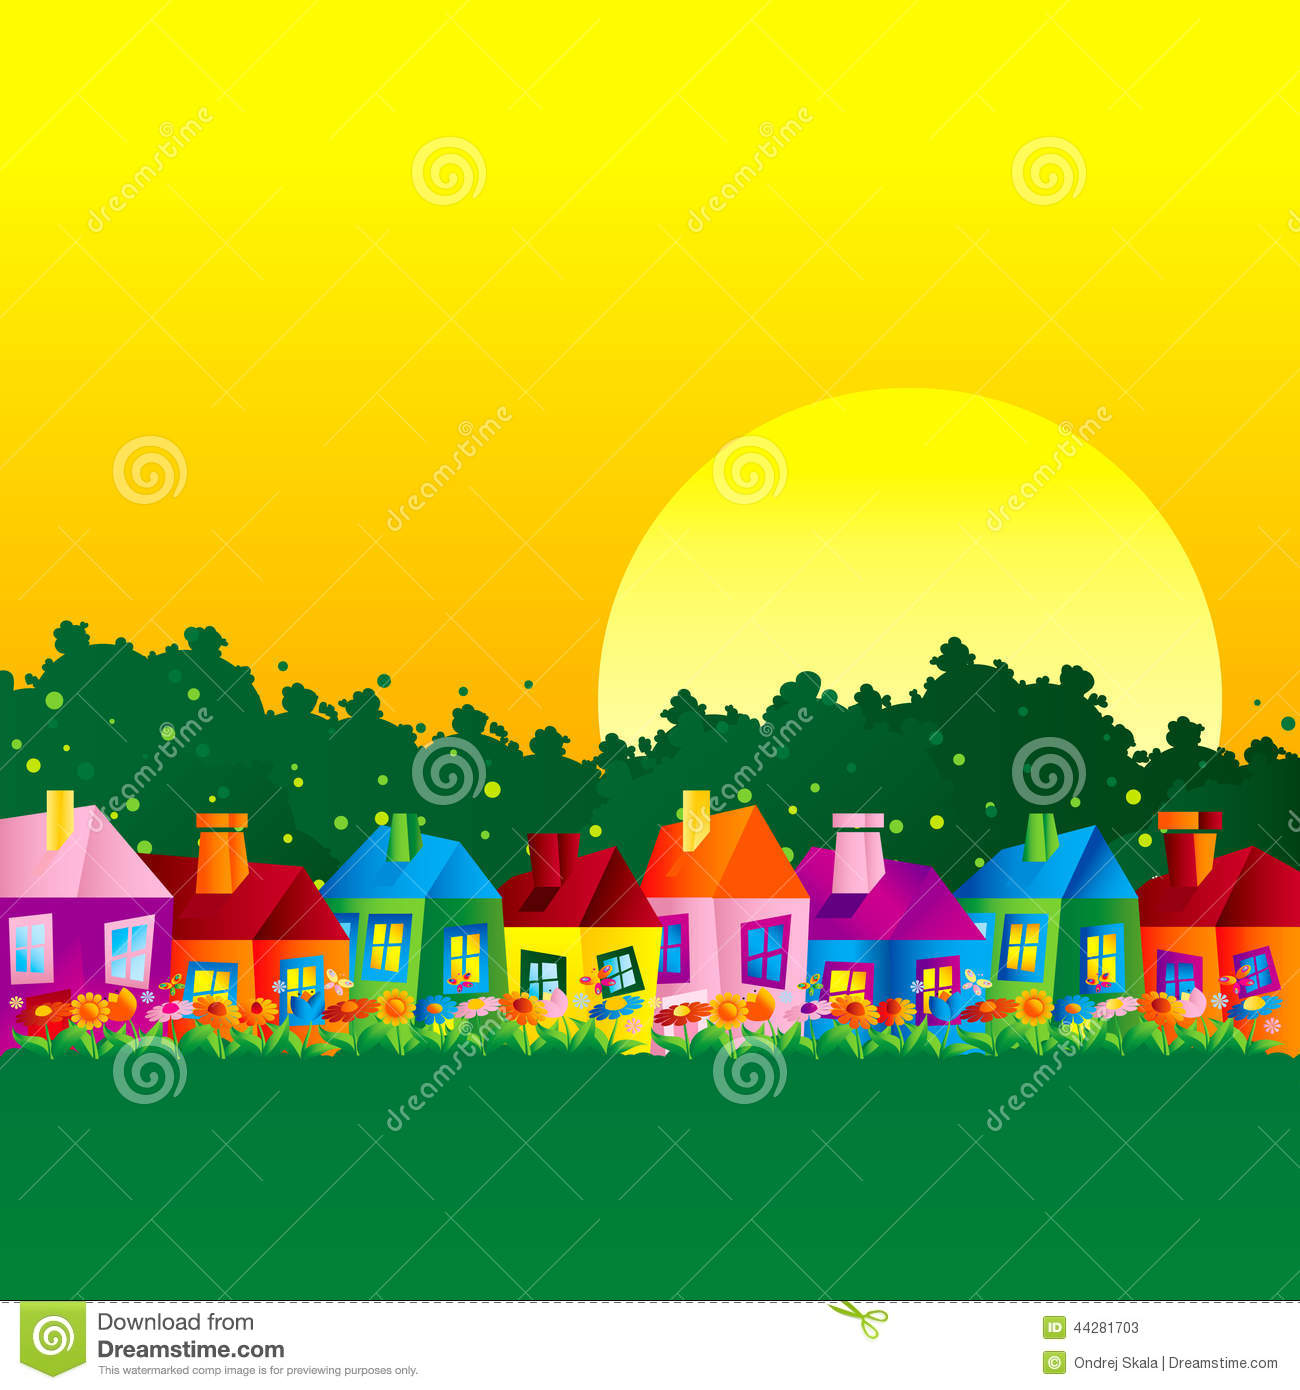 Background Caricature House Stock Vector Image 44281703